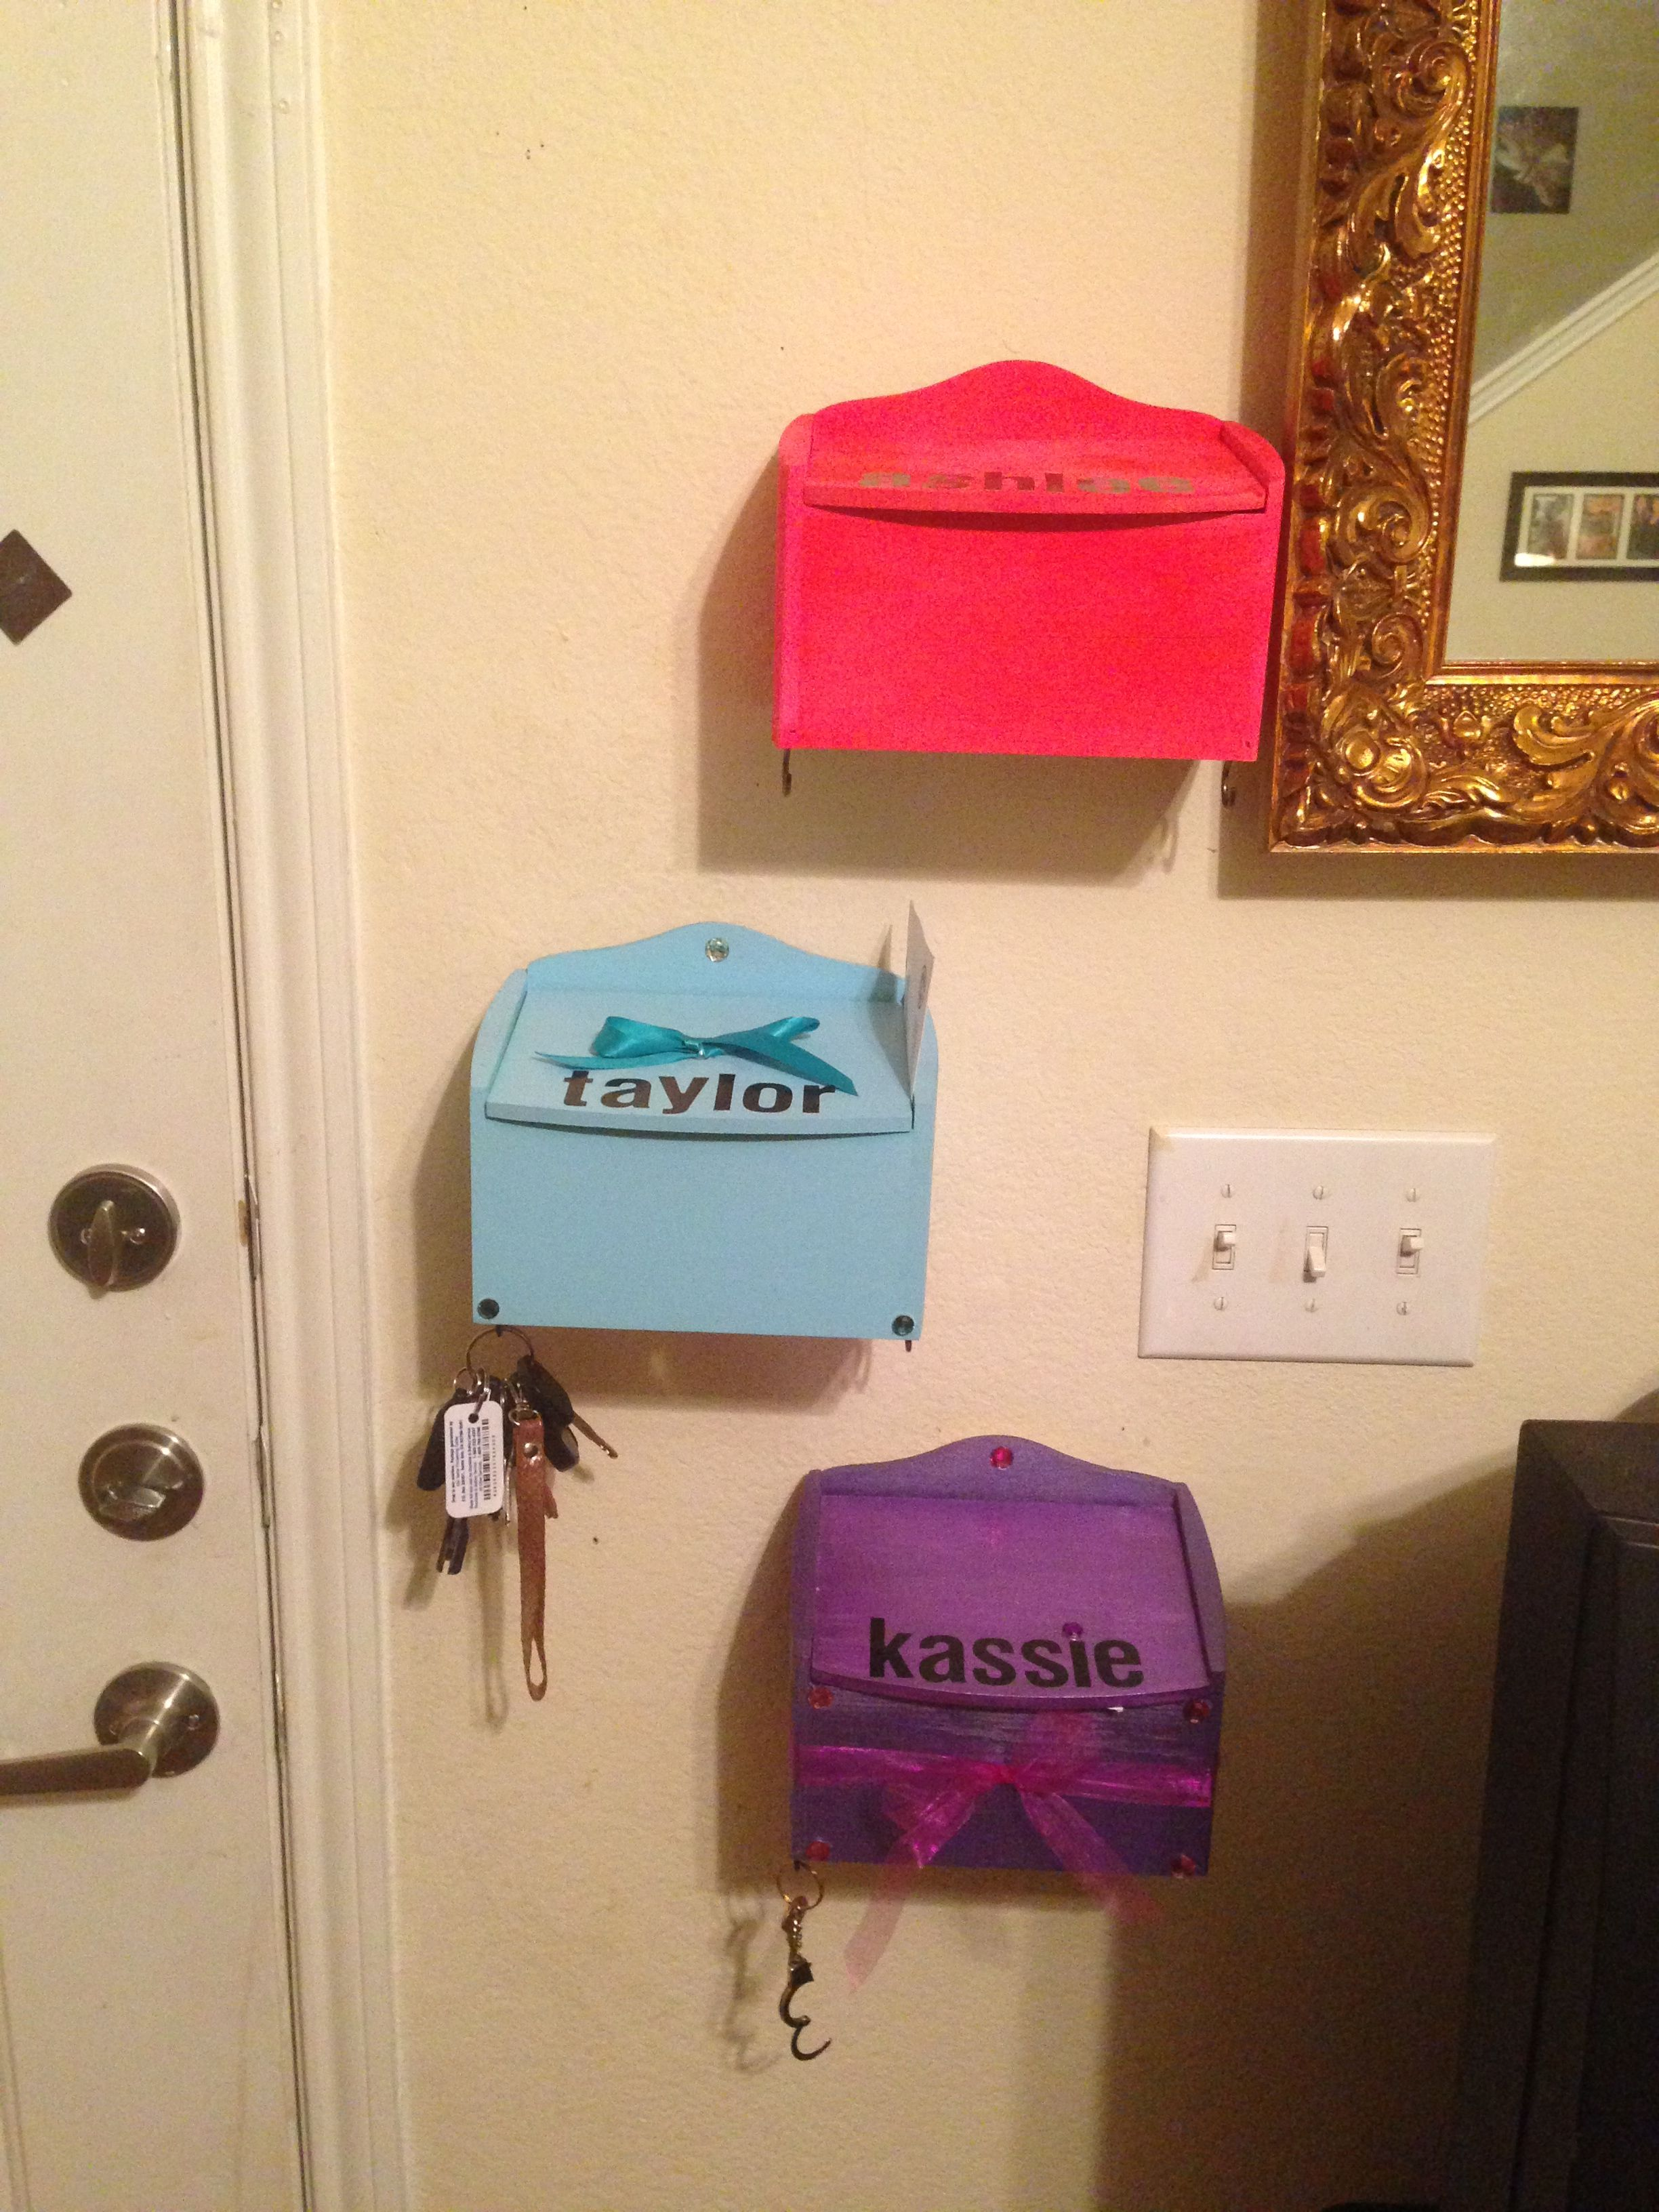 Diy roommate mailboxes roommate gifts dorm diy